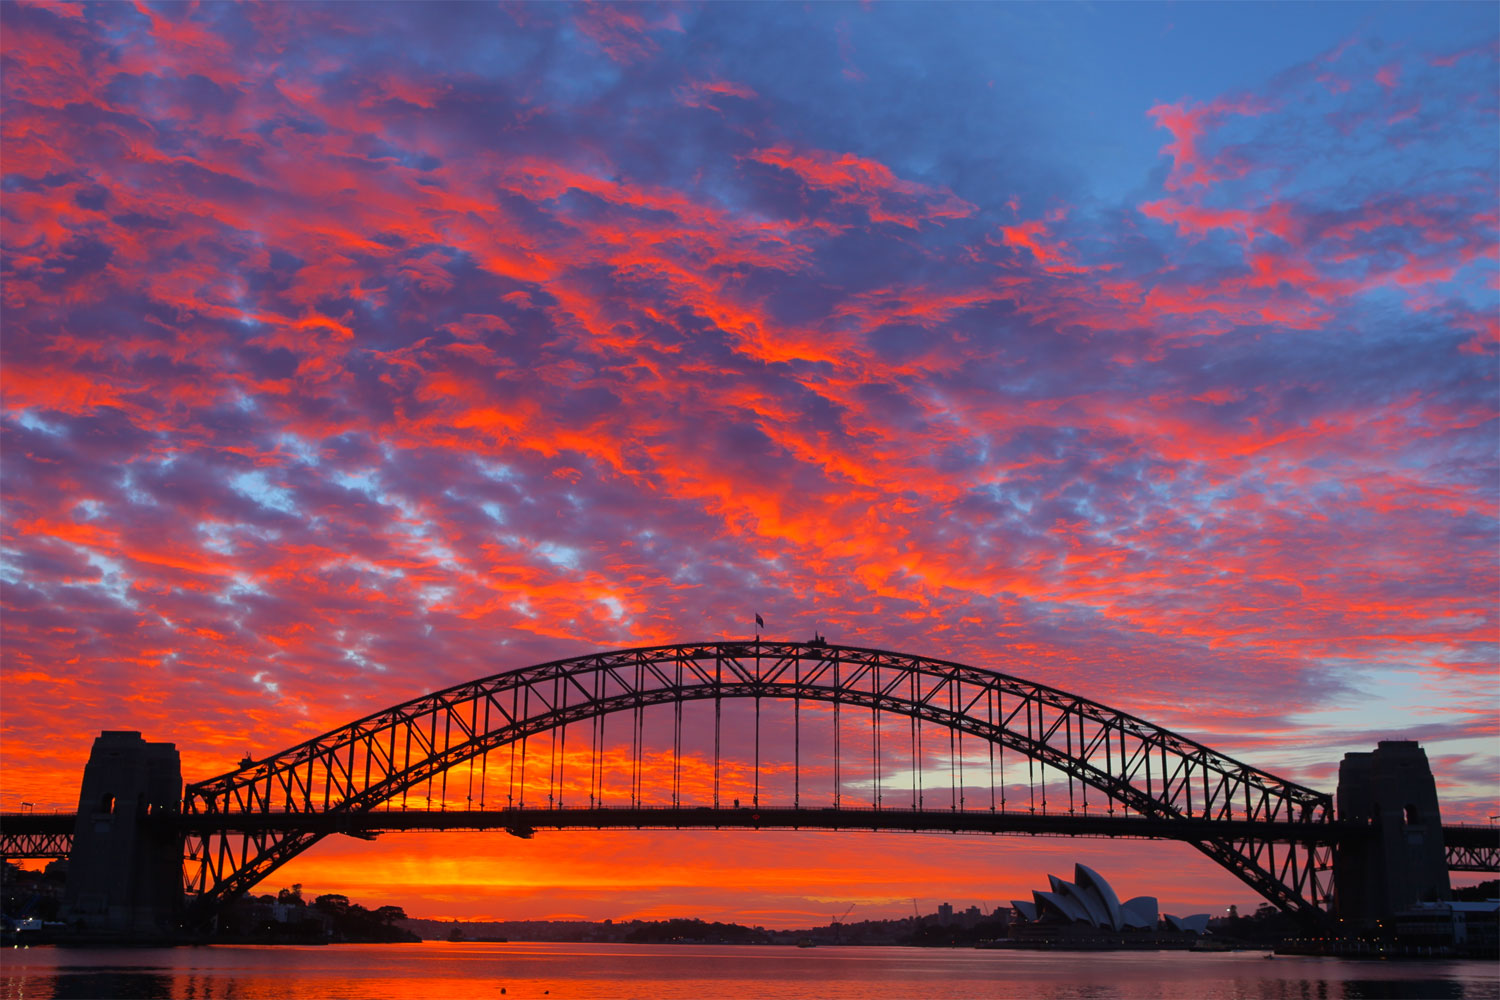 It doesn't matter how good your gear is, if you're not going out there photographing then you've purchased yourself an expensive paper weight. This sunrise shot of the Sydney Harbour Bridge was captured at 5am.